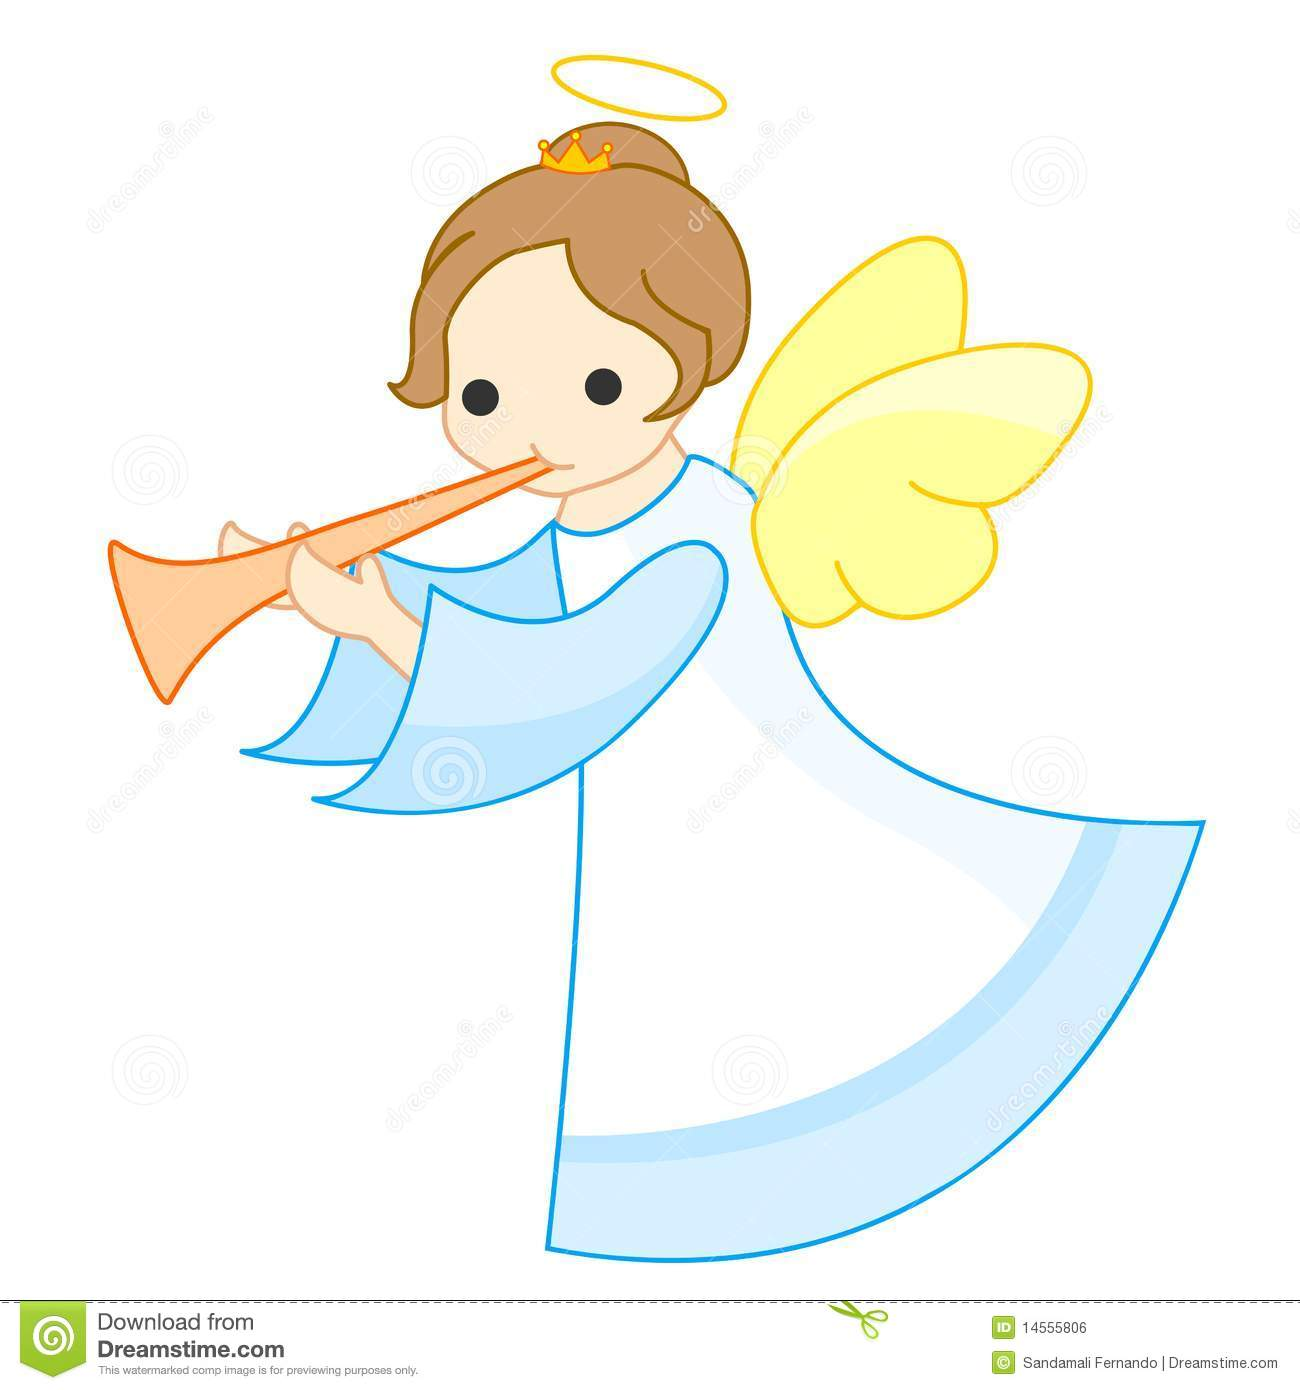 angel clipart trumpet cute vector cartoon baptism illustration background clipground cliparts angelic preview